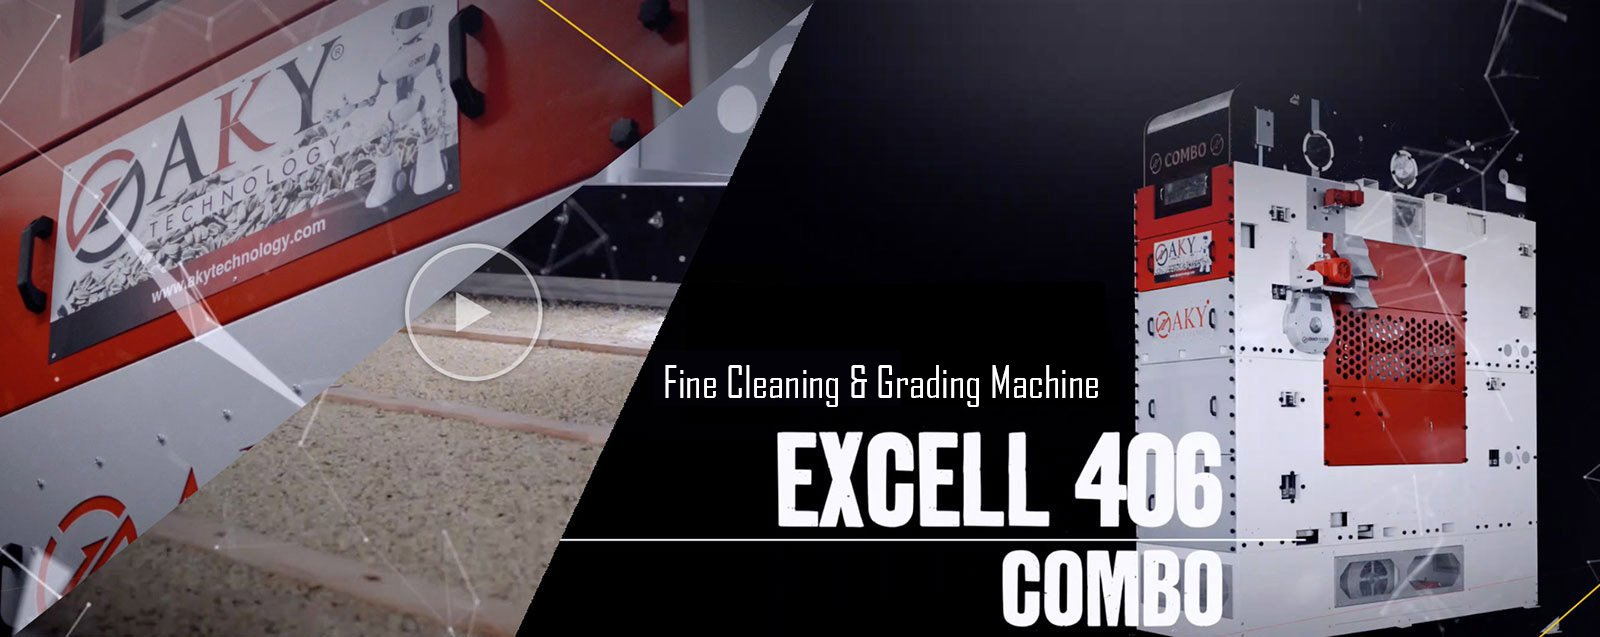 The World's Largest Pre-Cleaning and Grading Machine